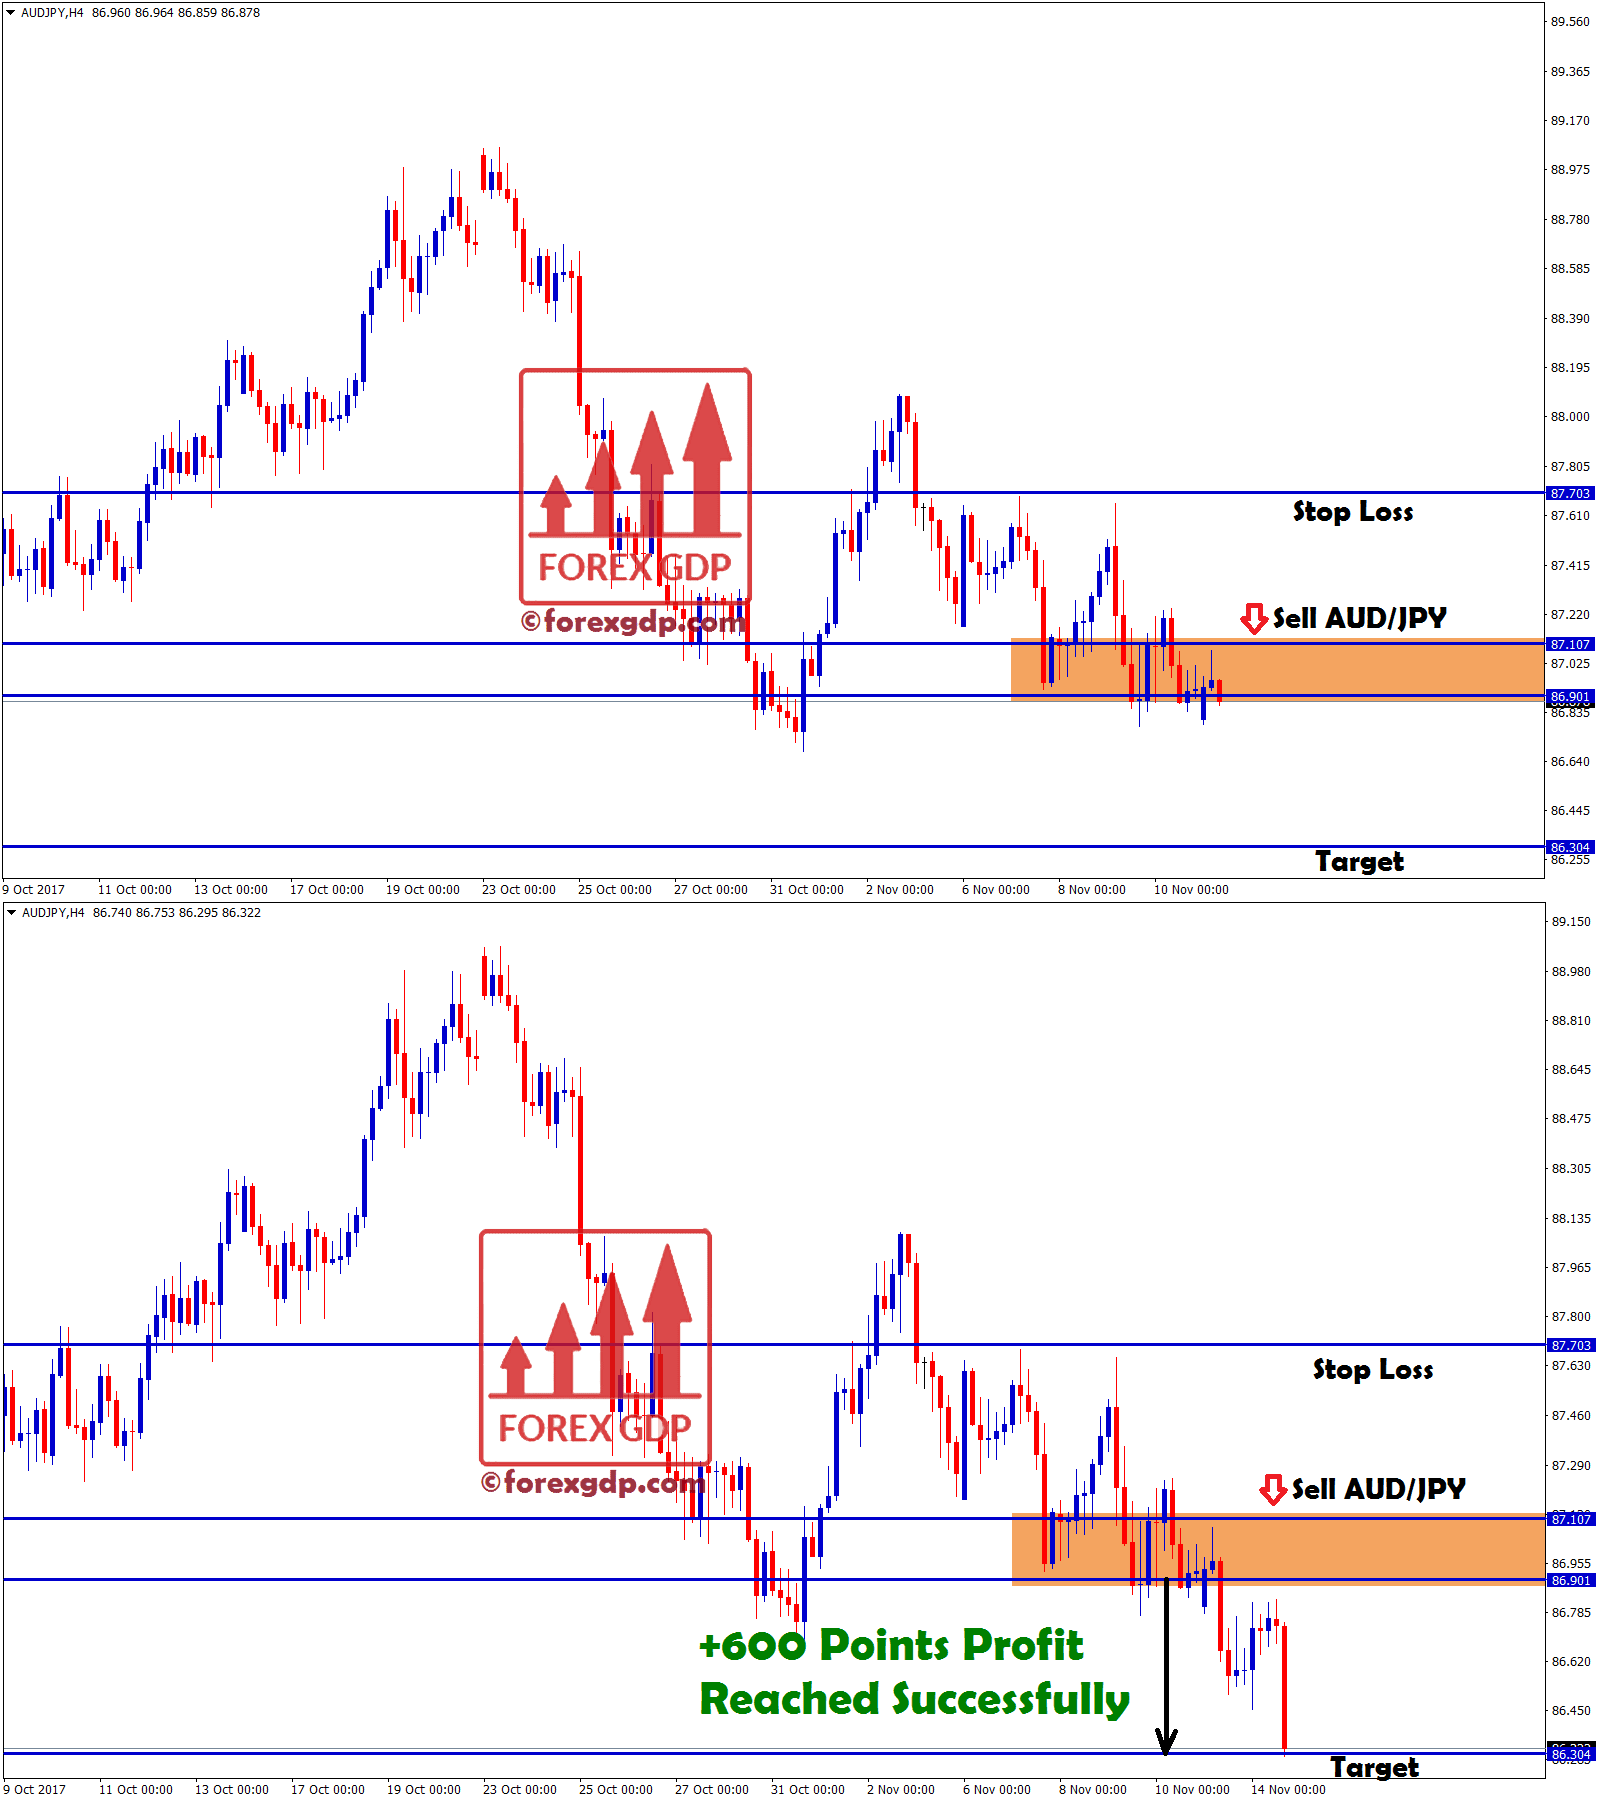 Sell audjpy profitable trading strategy